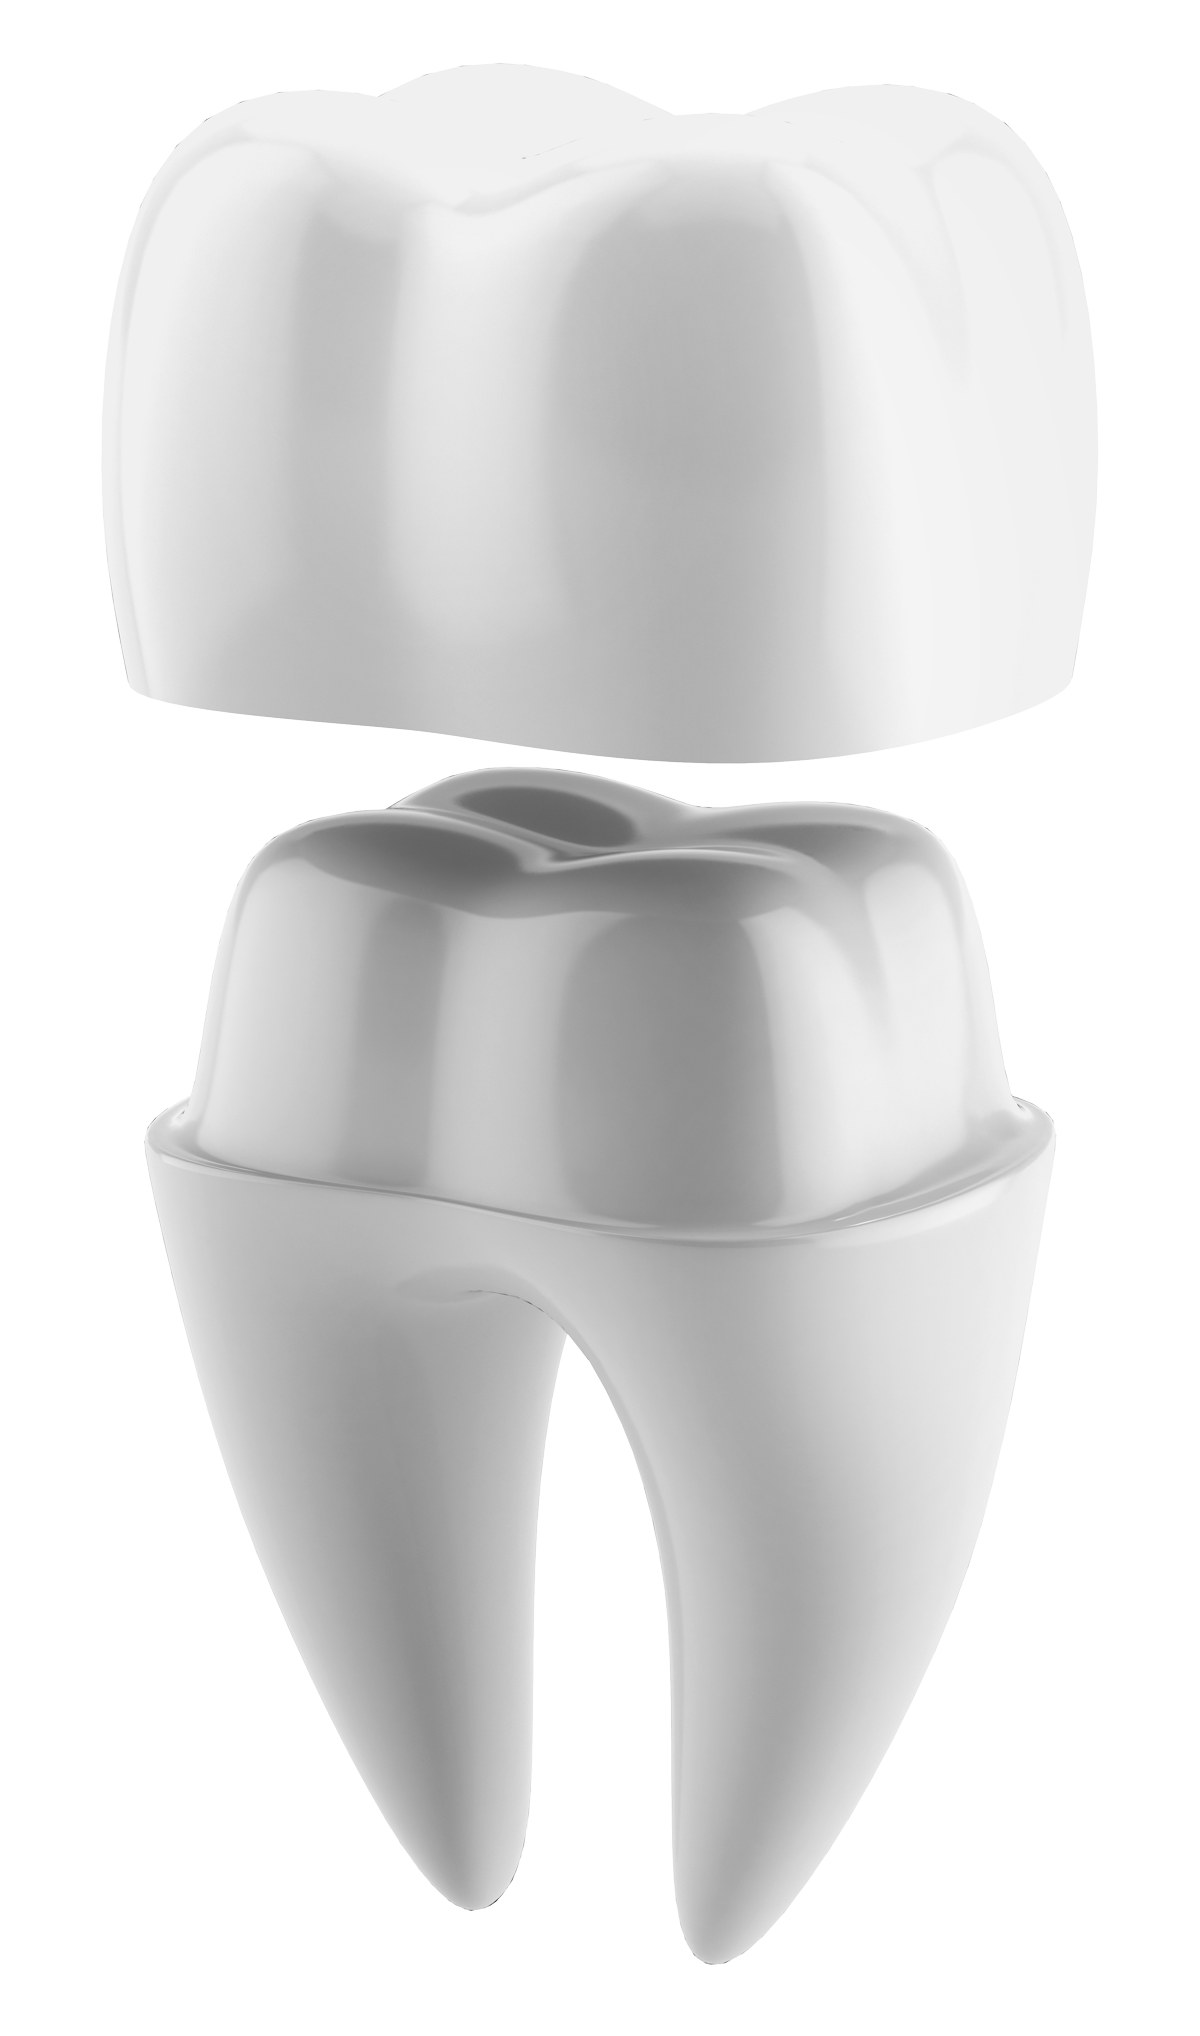 tooth-crown.png